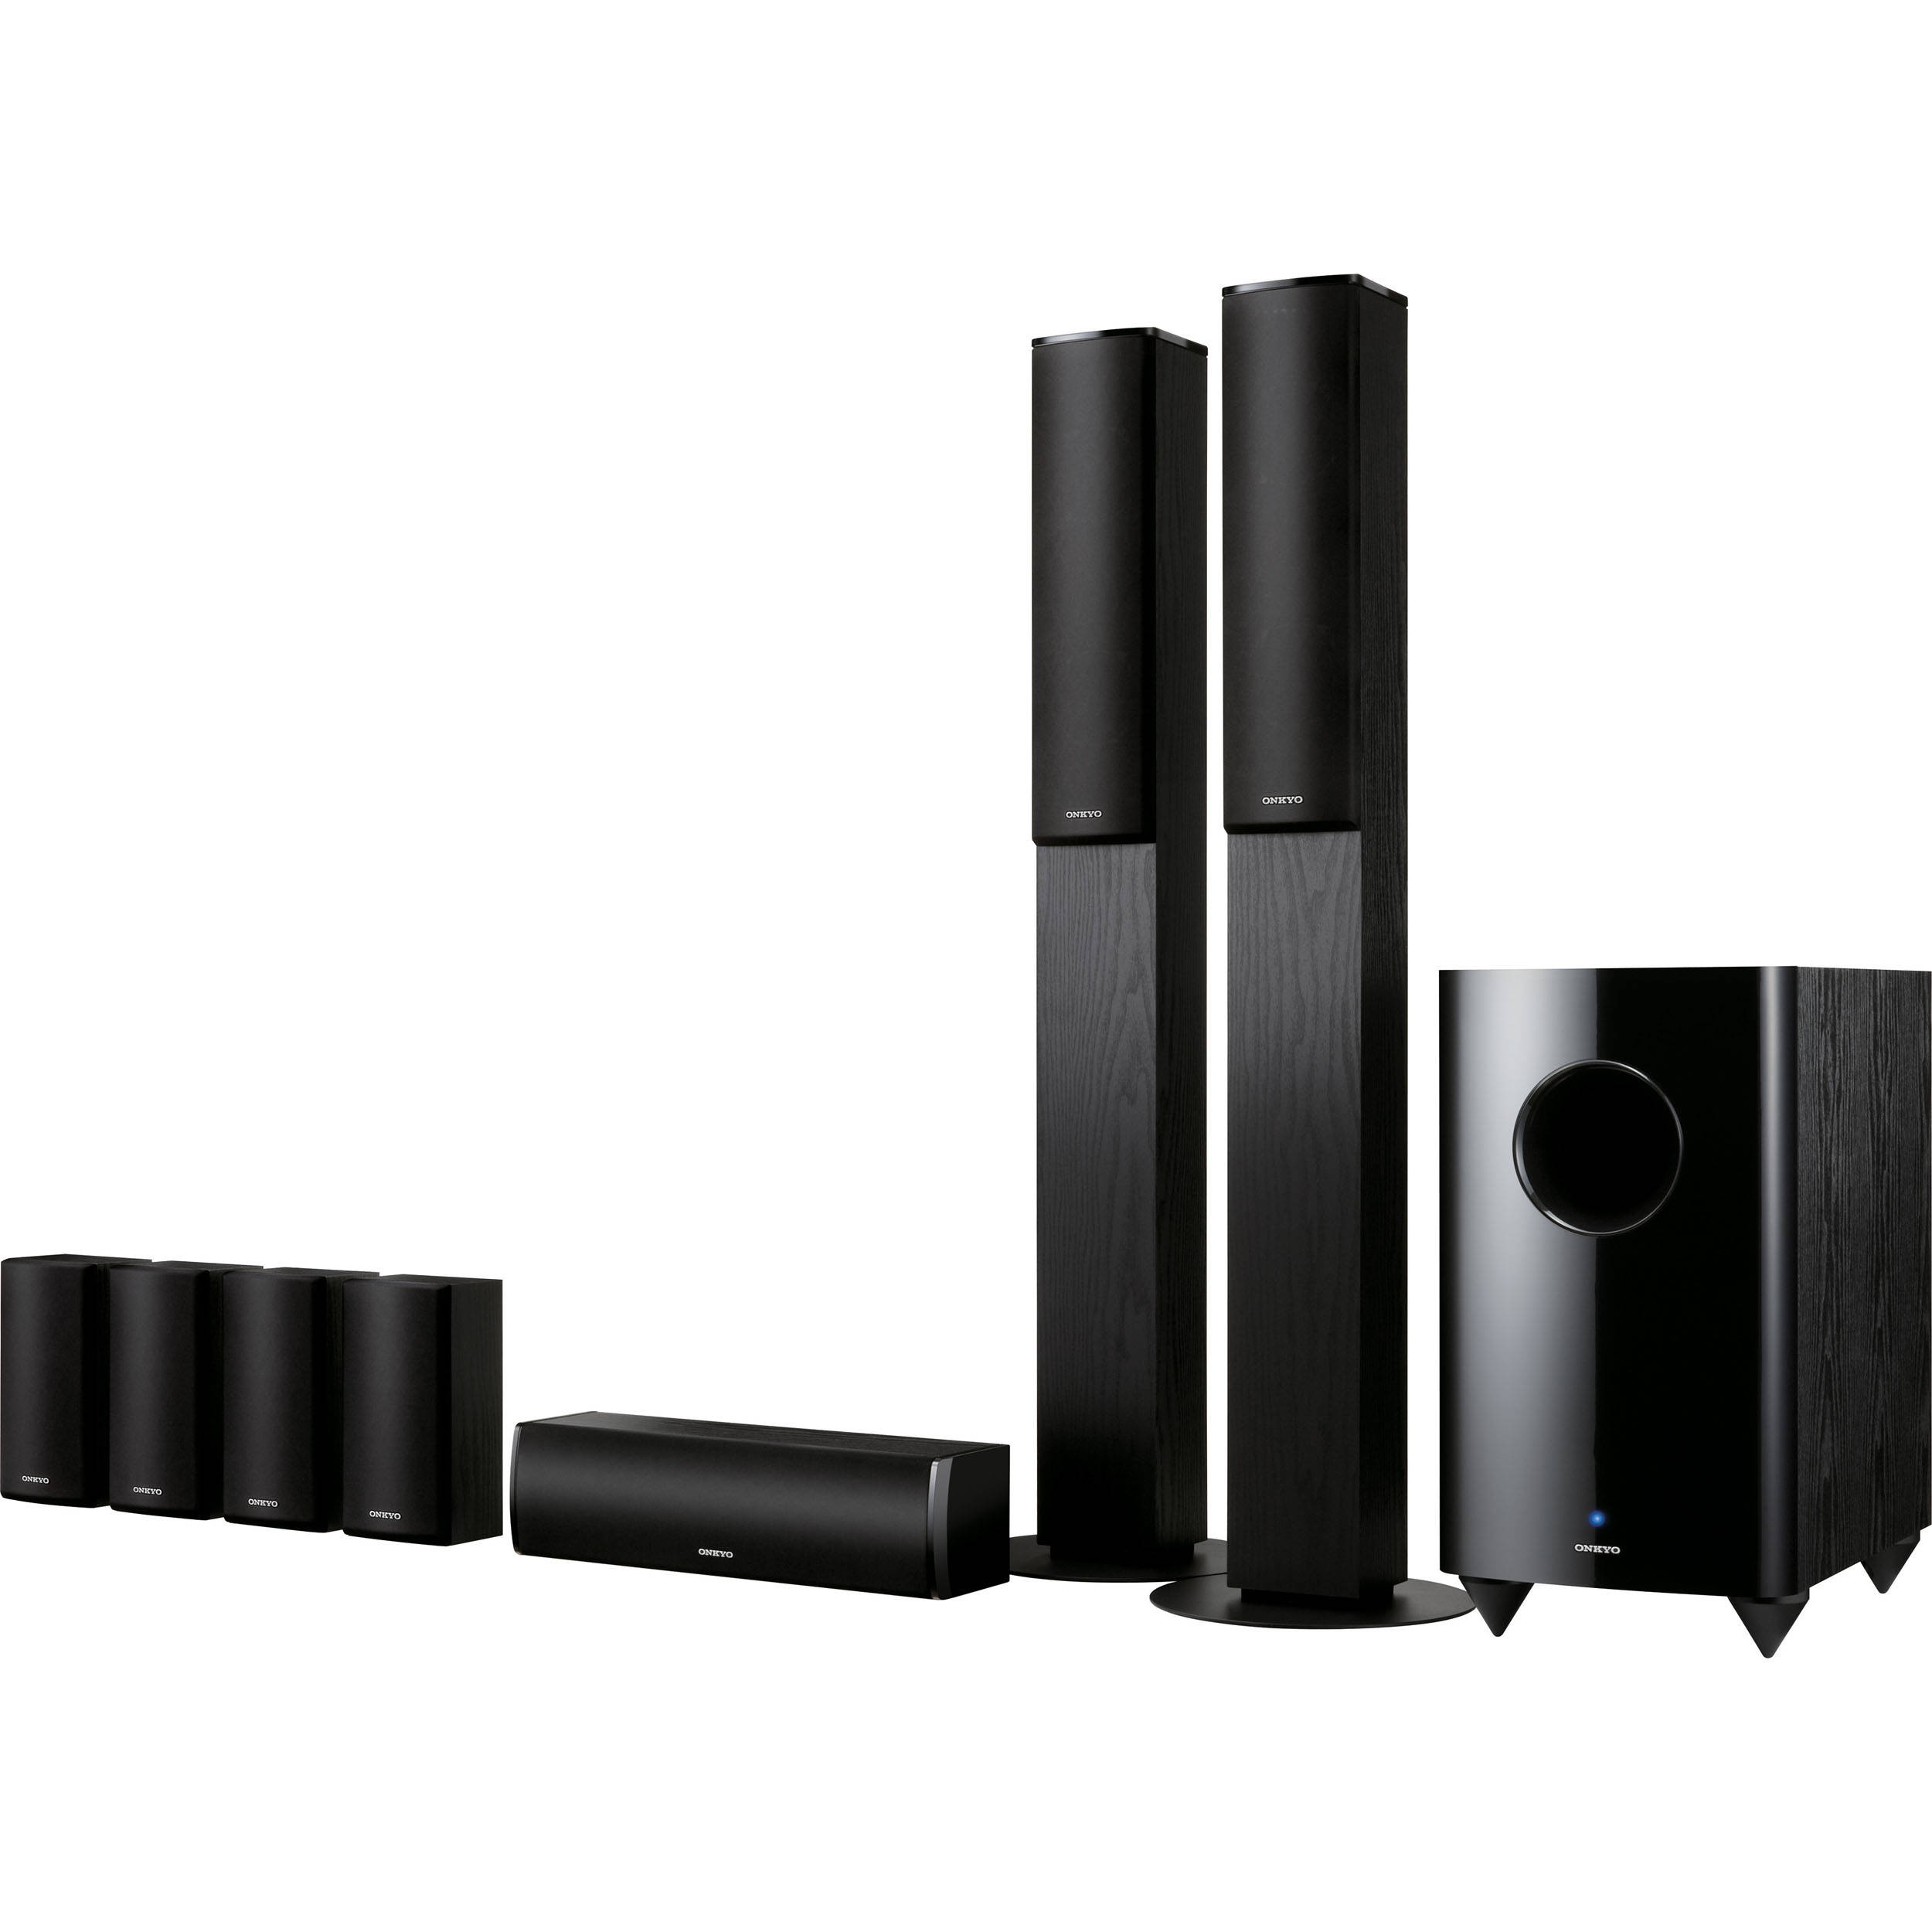 onkyo sks ht870 7 1 channel home theater speaker system. Black Bedroom Furniture Sets. Home Design Ideas